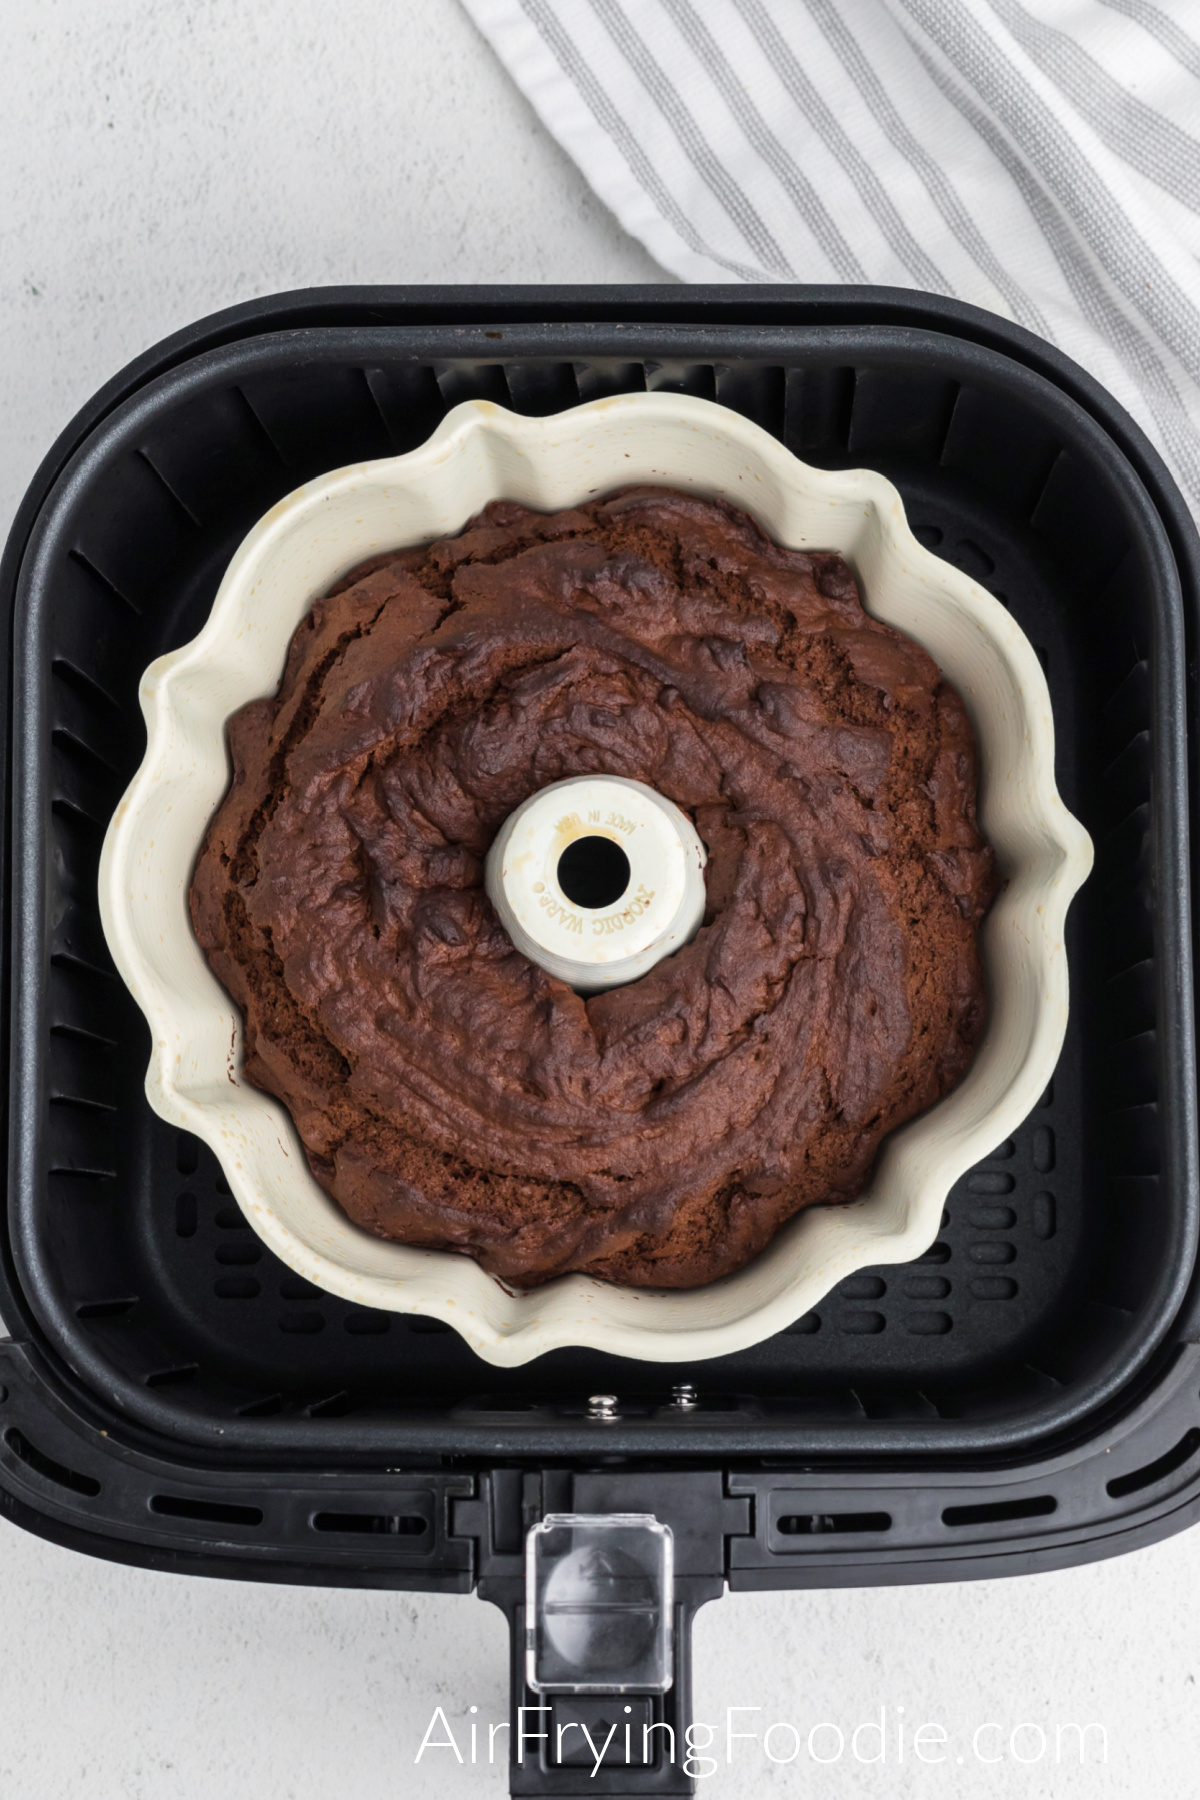 Cooked chocolate bundt cake in the air fryer basket.